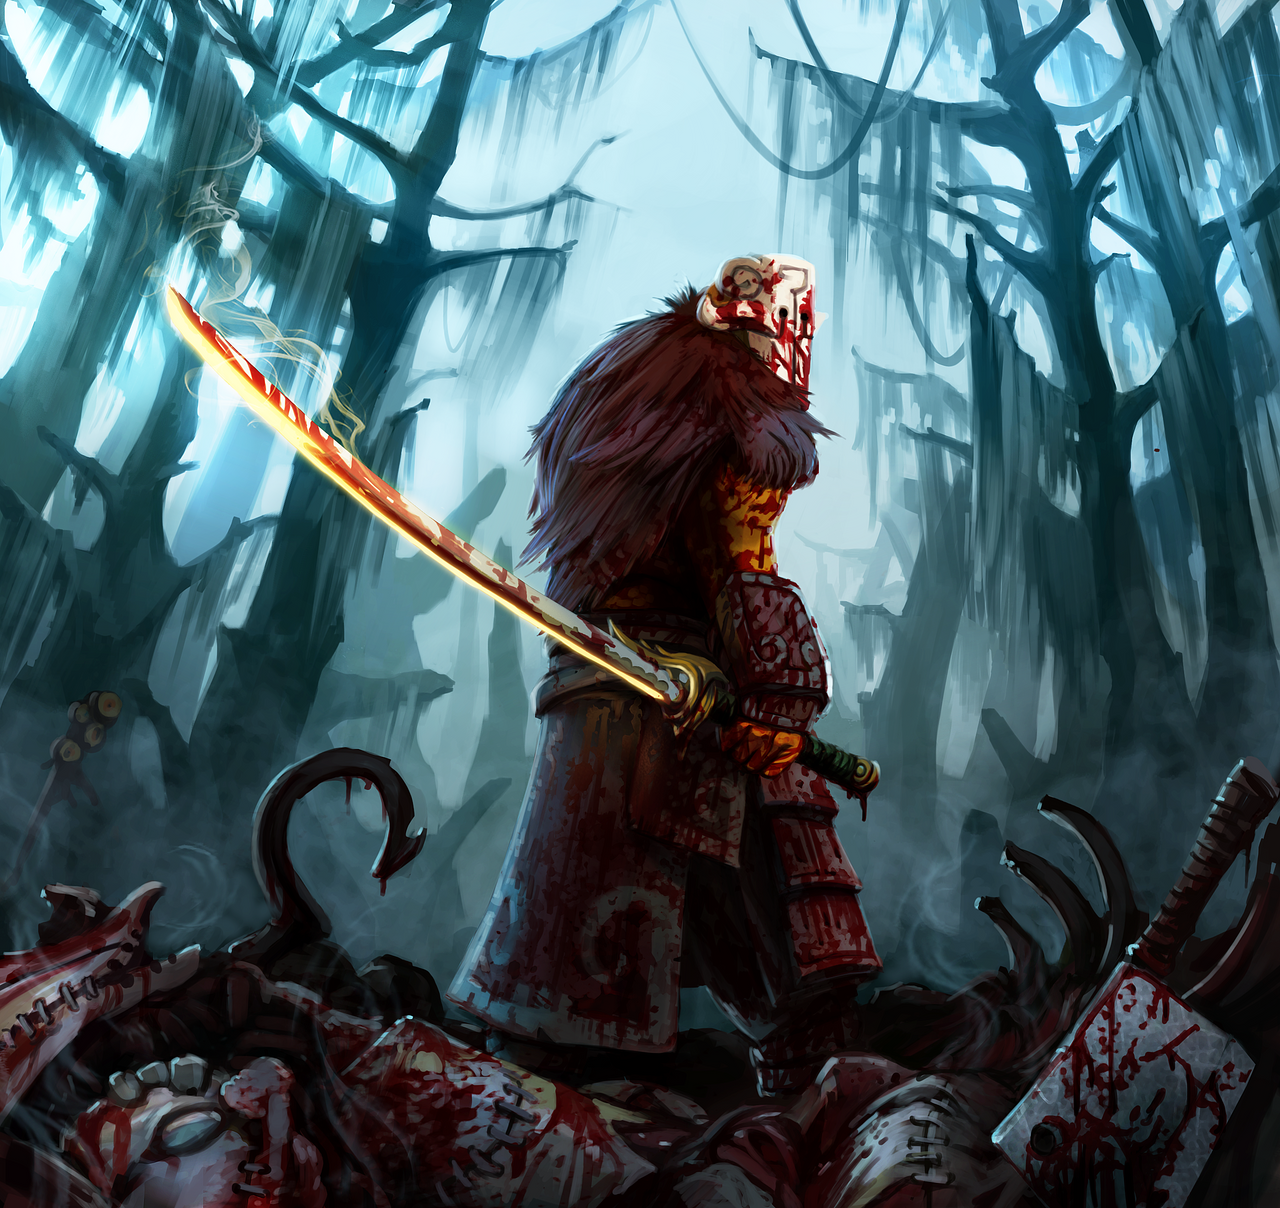 I Call It The Slaughter Of Pudge Incredible Art By Entroz